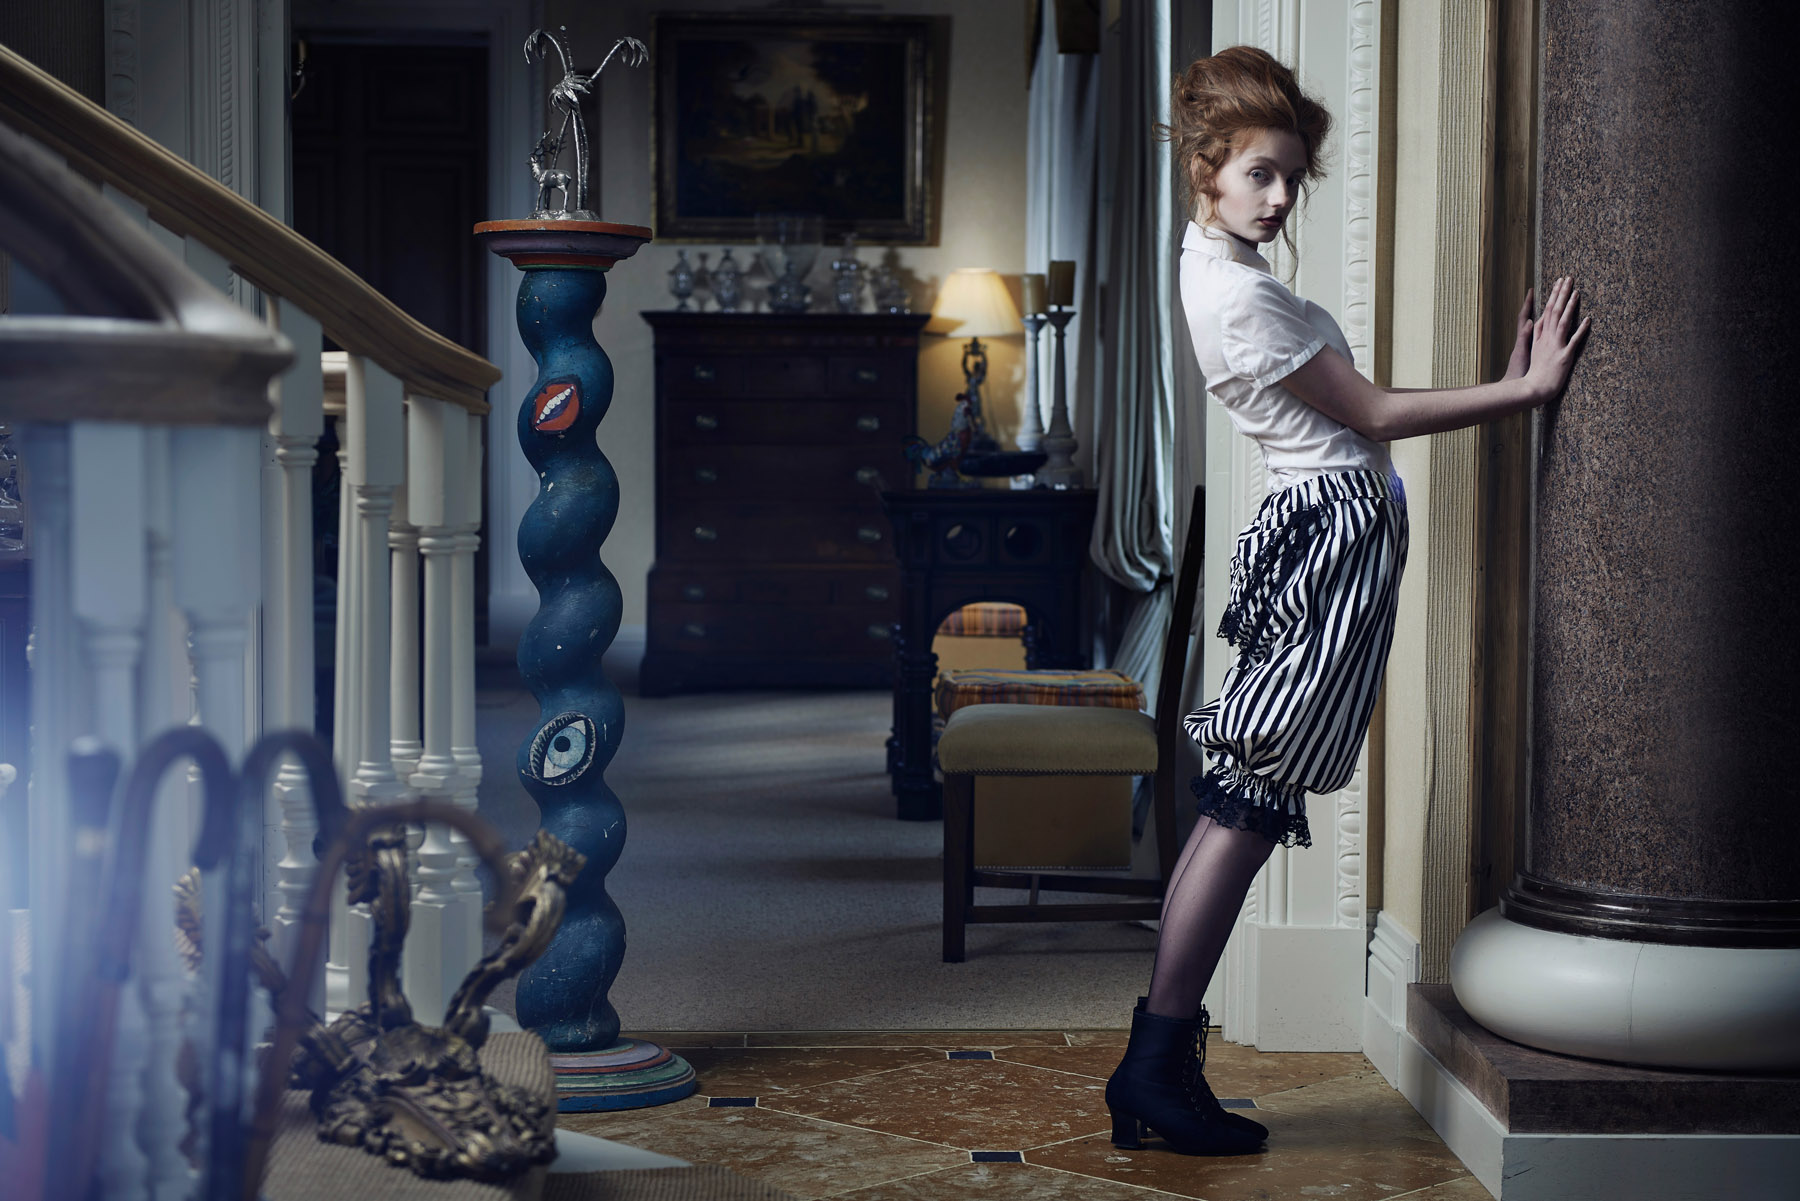 Fashion shoot in a house full of antiques